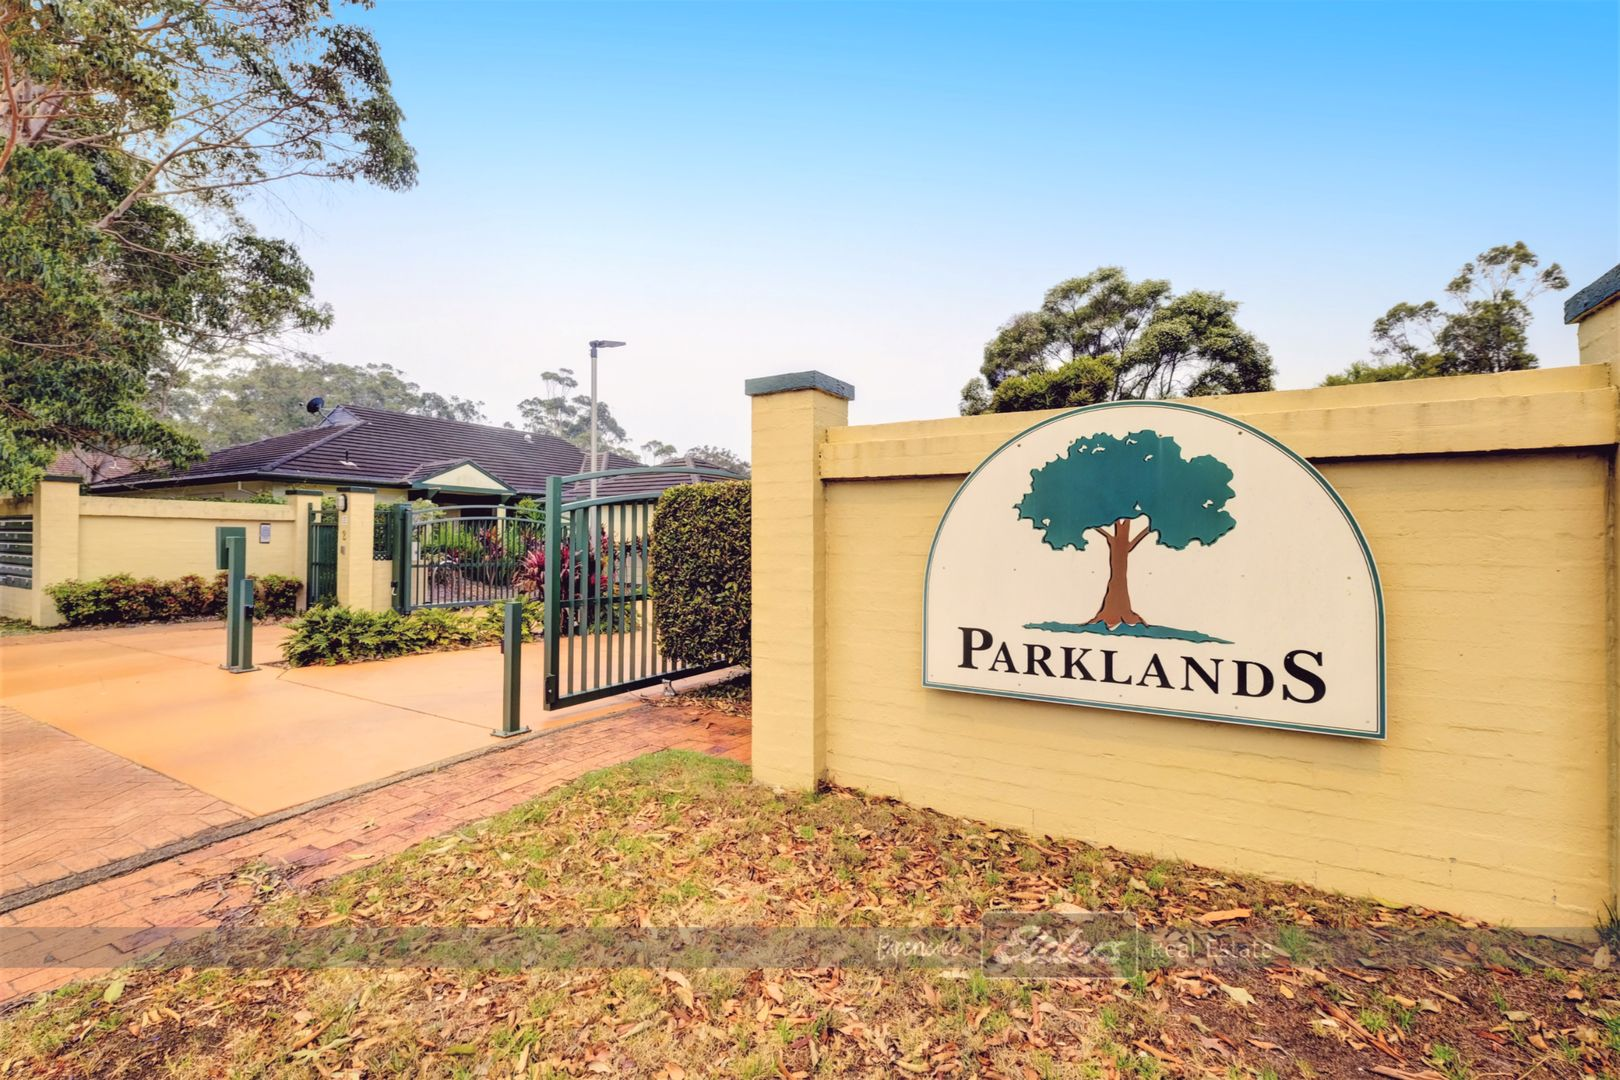 6/2 Breese Parade 'Parklands', Forster NSW 2428, Image 1